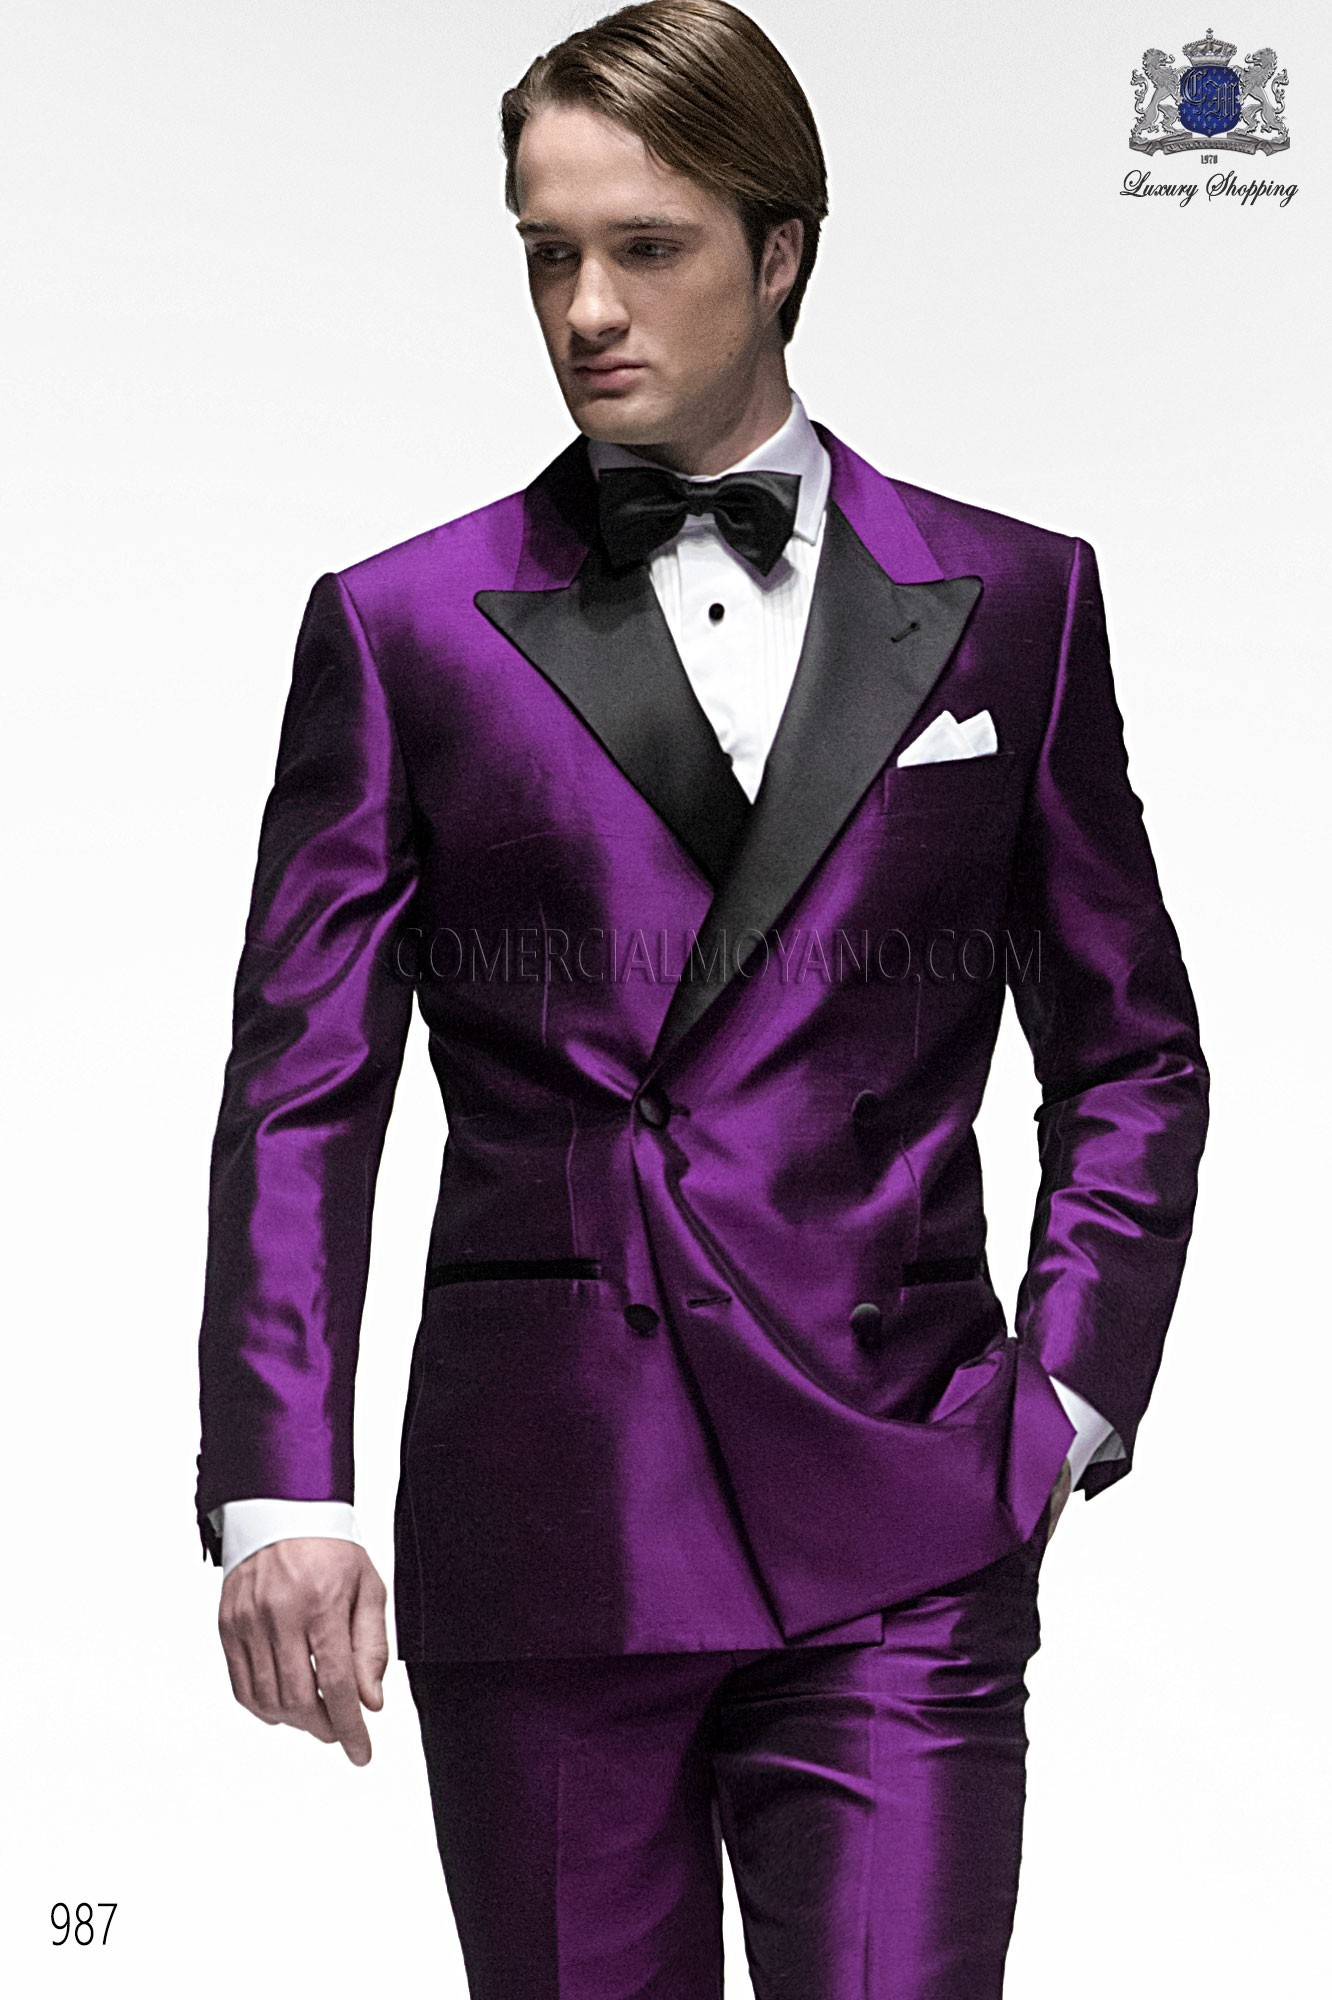 Black Tie purple men wedding suit model 987 Ottavio Nuccio Gala